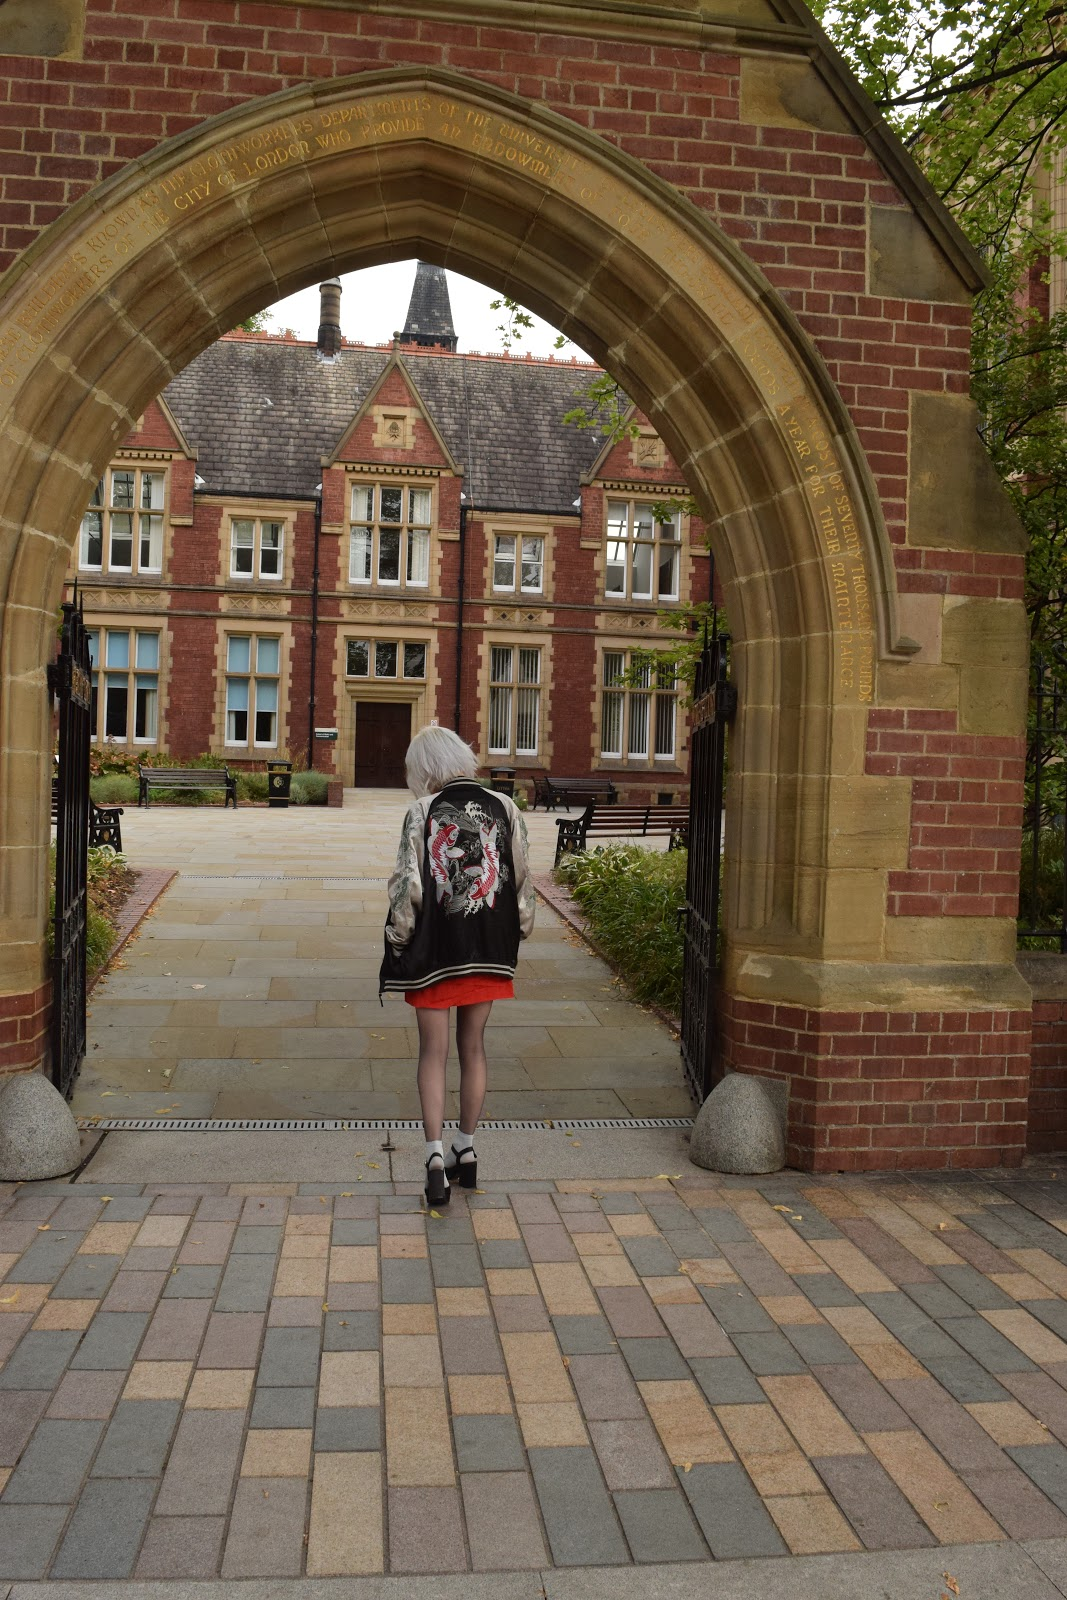 silver haired girl wearing heels, red dress and souvenir jacket standing in an archway at Leeds uni